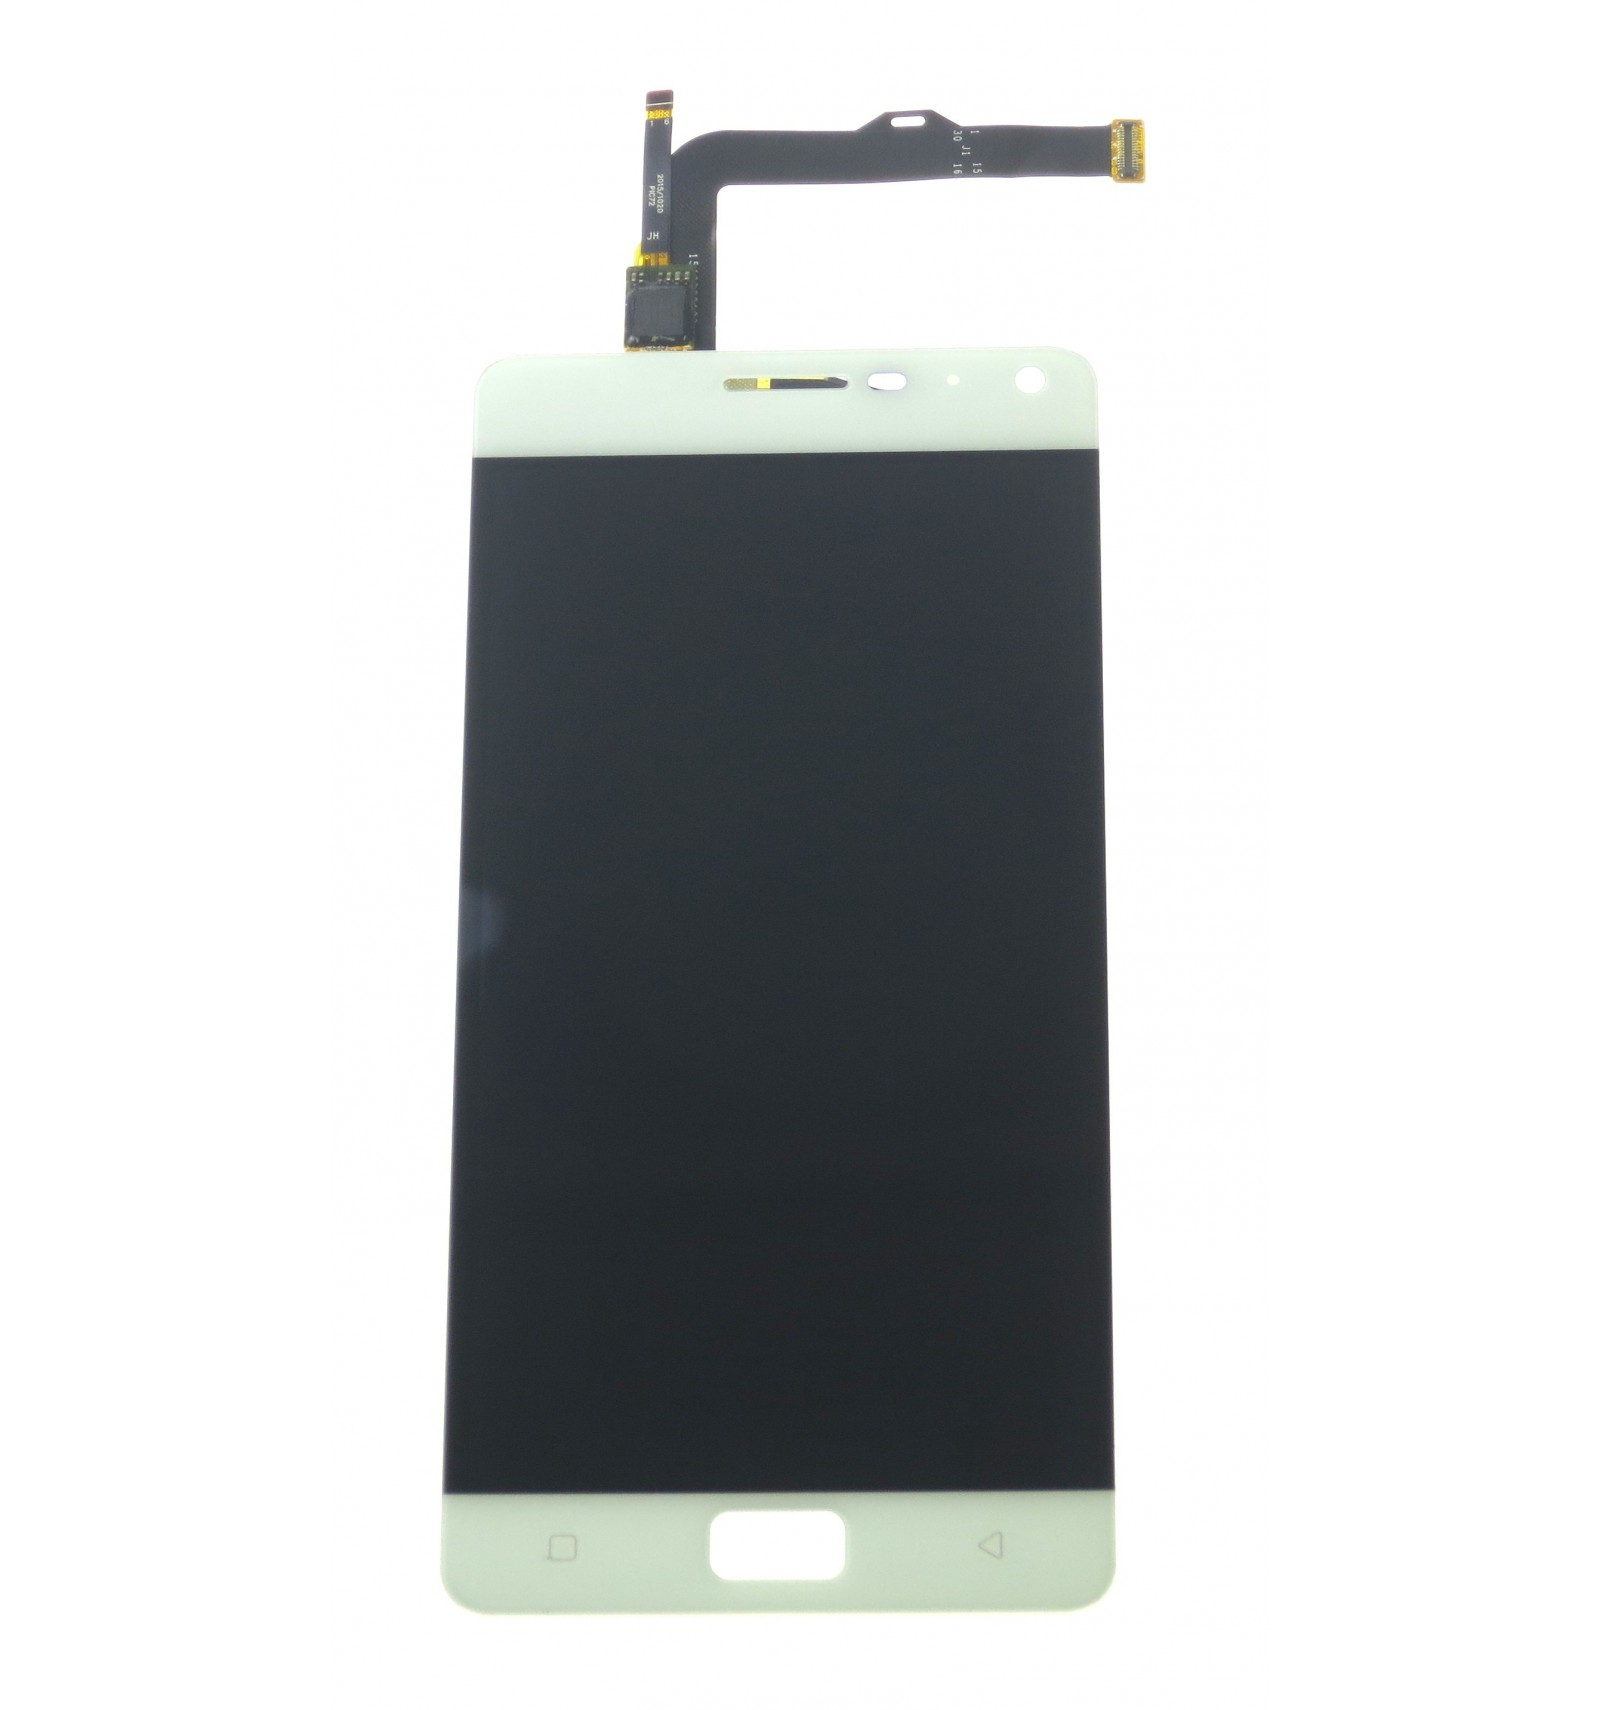 LCD Touch Screen White OEM For Lenovo Vibe P1 P1 Pro